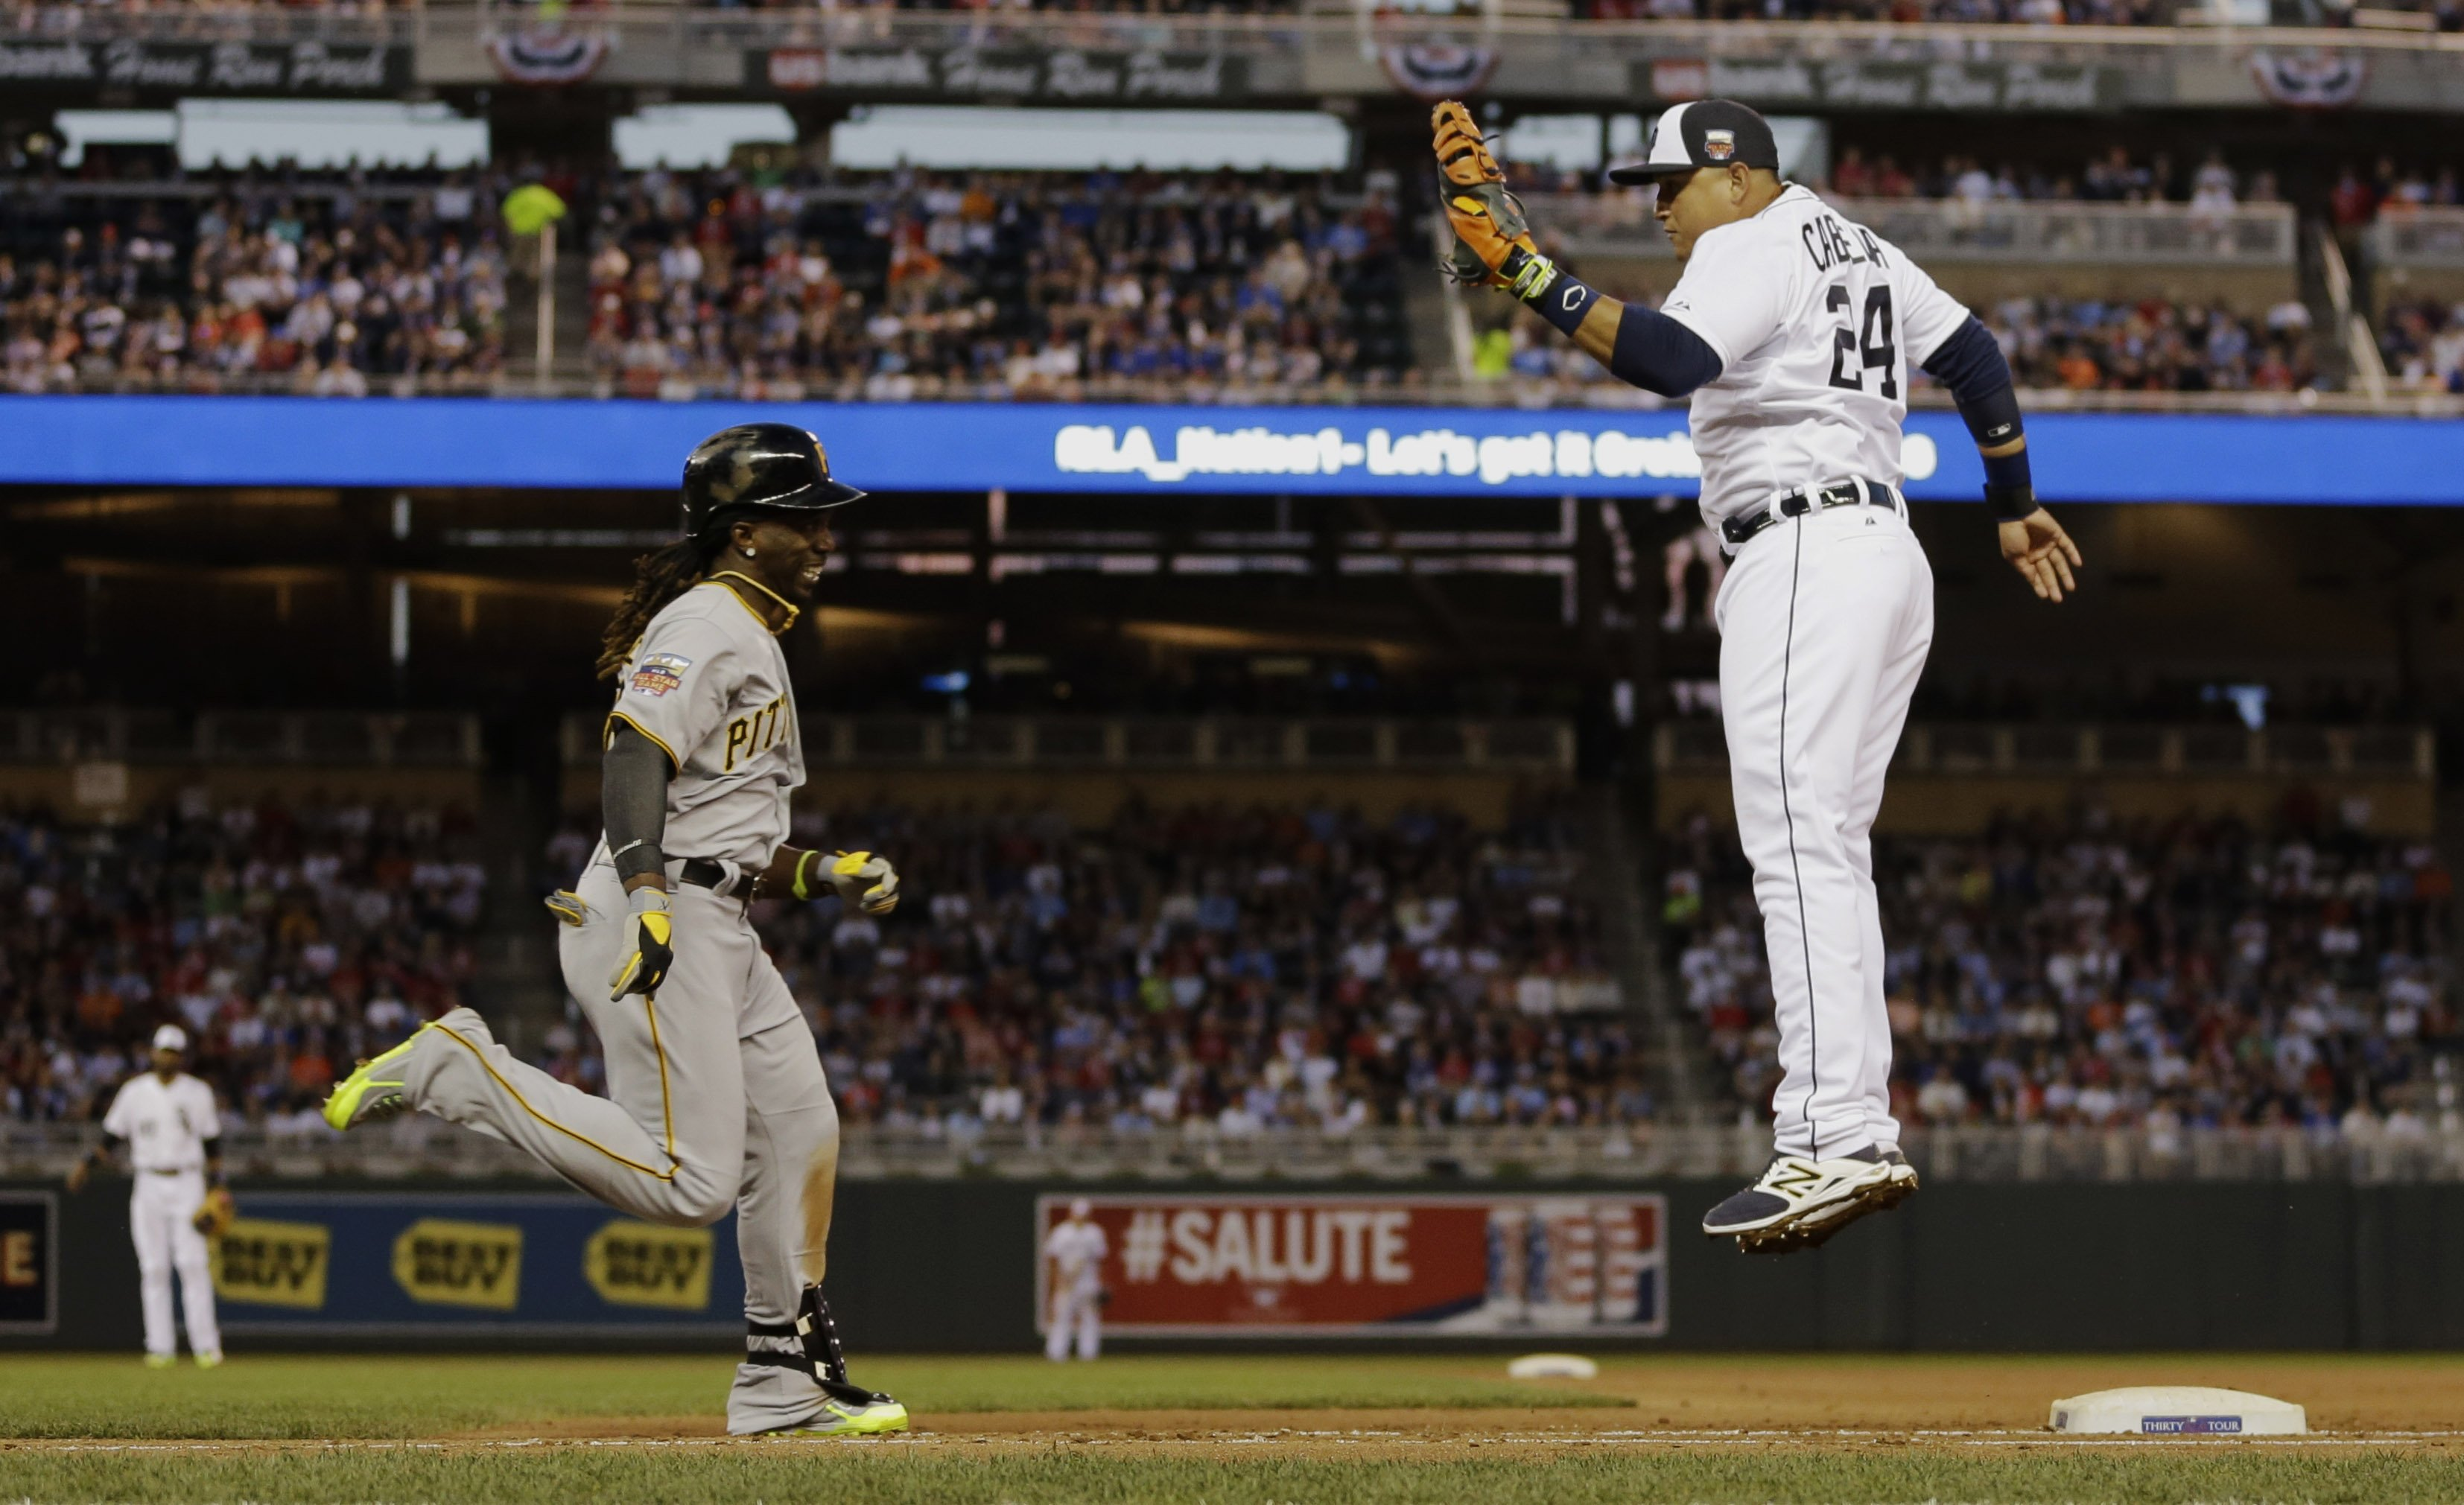 American League first baseman Miguel Cabrera, of the Detroit Tigers, tags out National League's Andrew McCutchen, of the Pittsburgh Pirates, at first base during the fifth inning of the MLB All-Star baseball game on July 15, 2014, in Minneapolis.